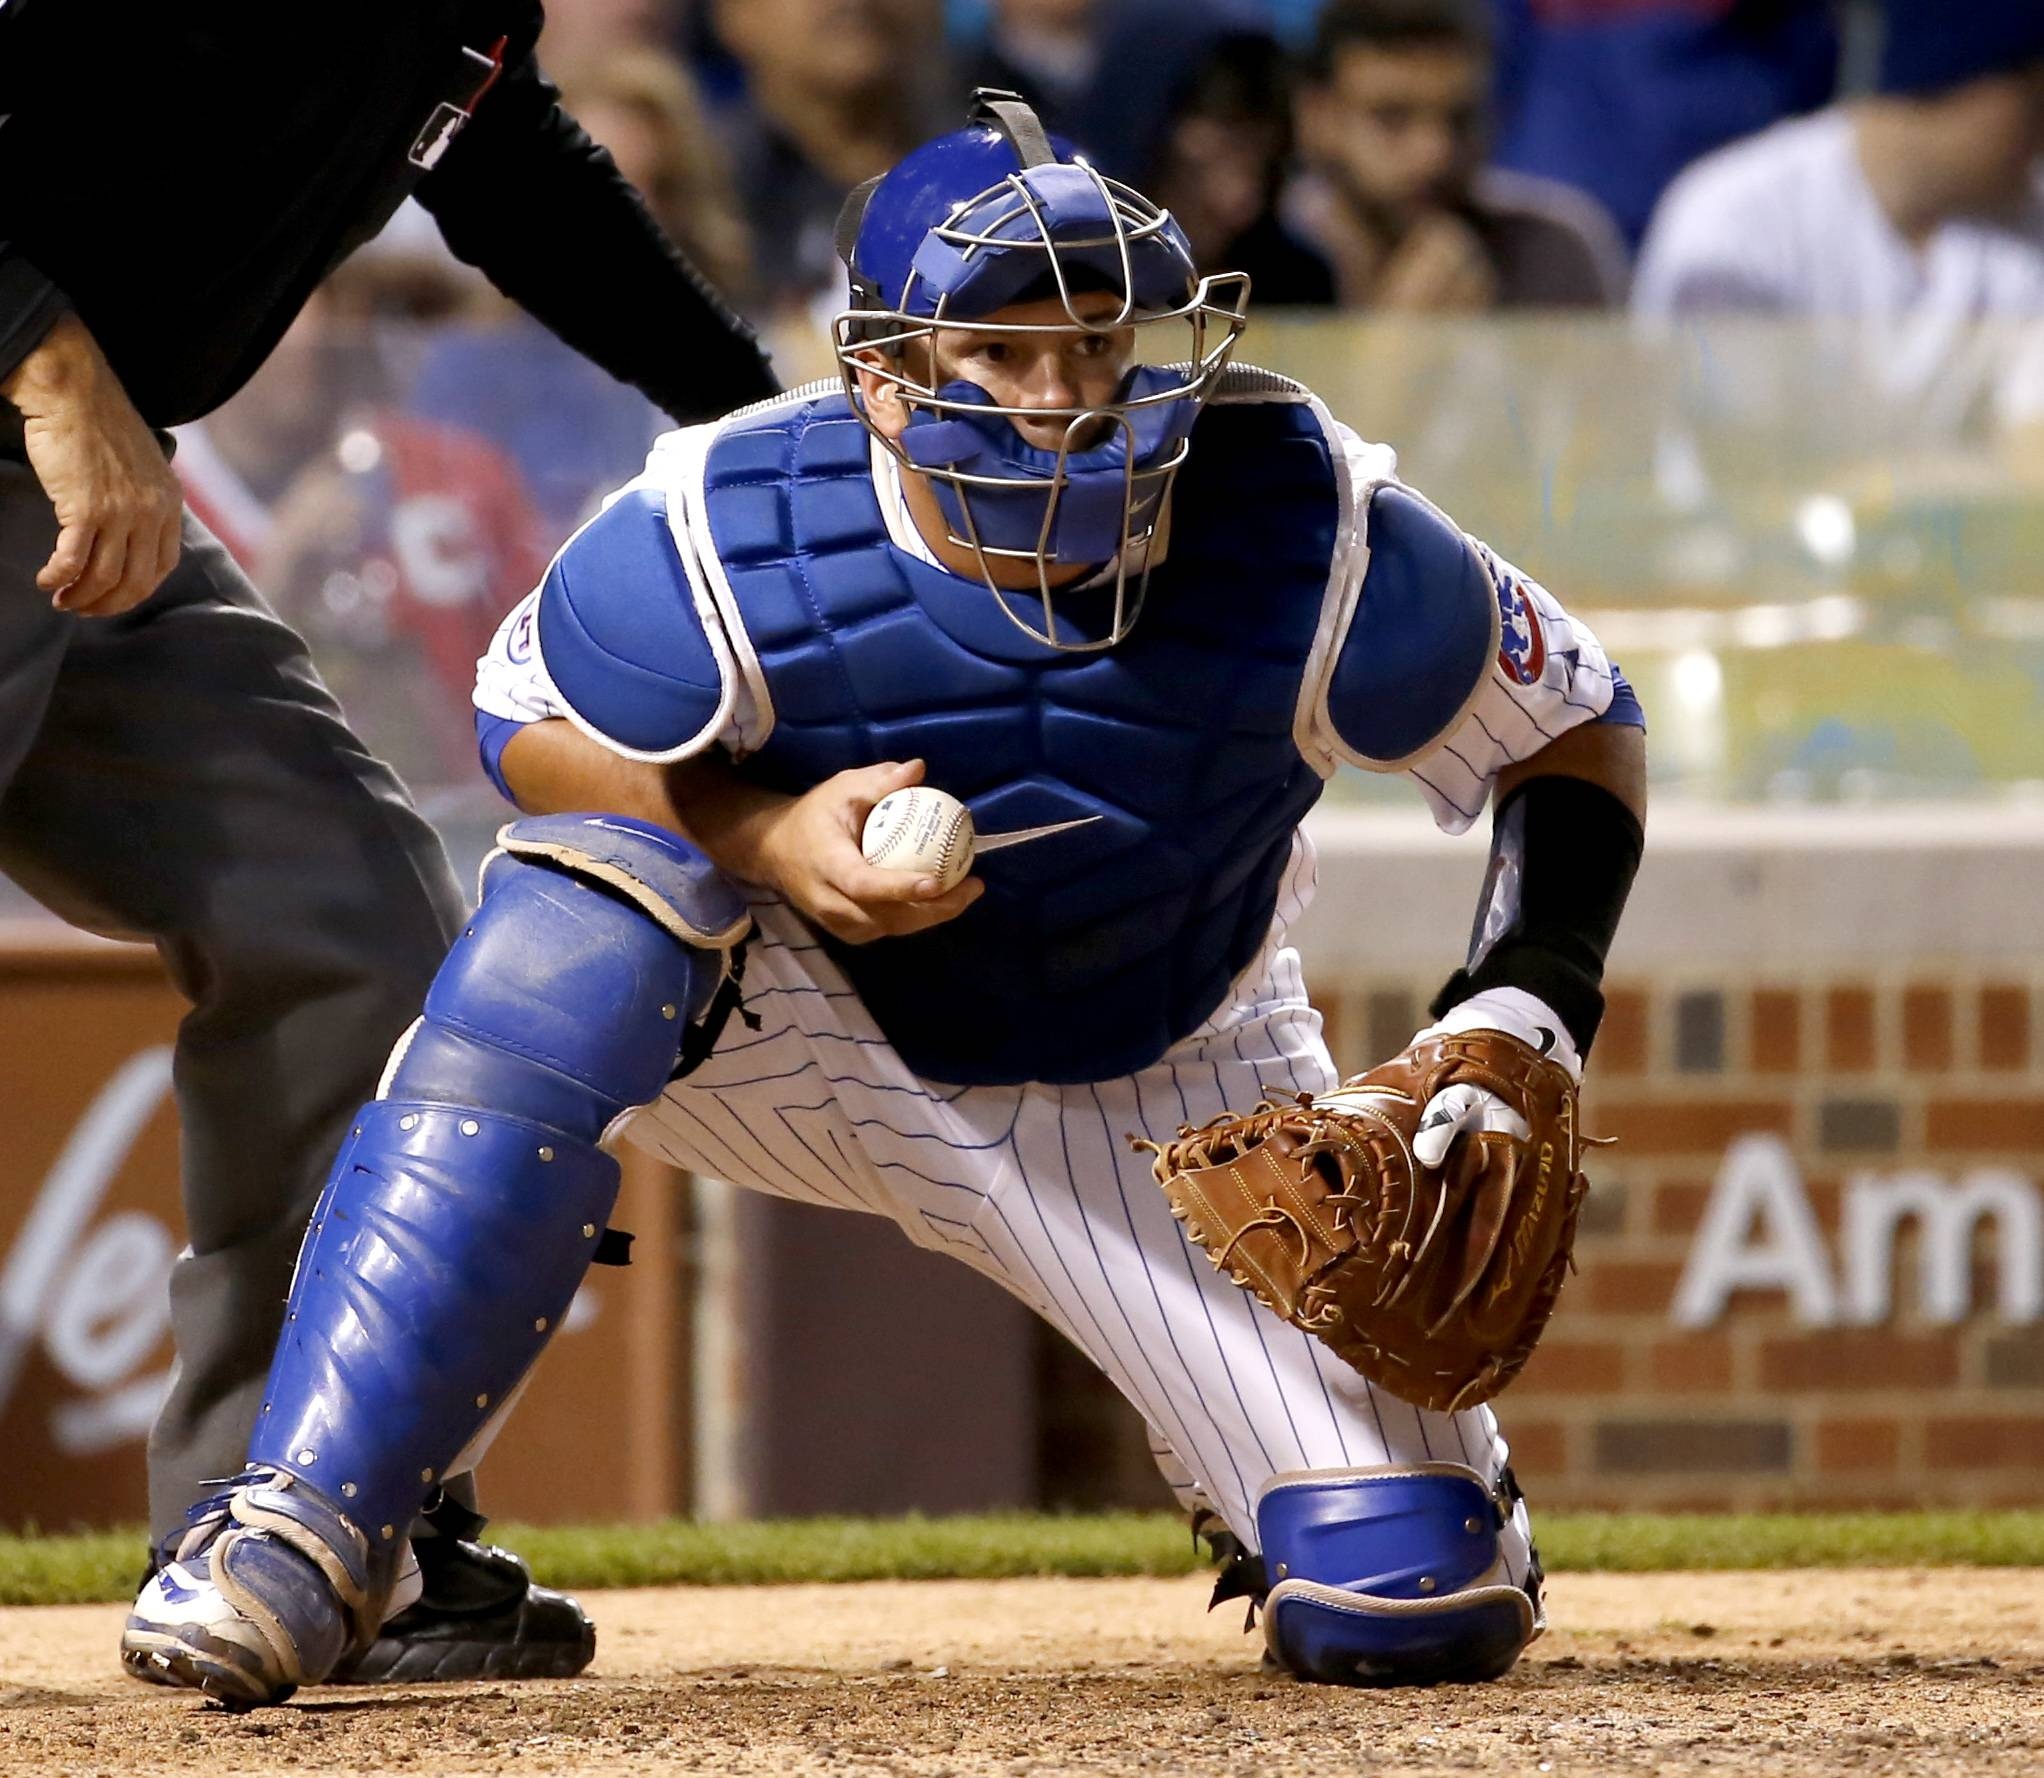 Cubs' Epstein convinced Schwarber can make it as catcher